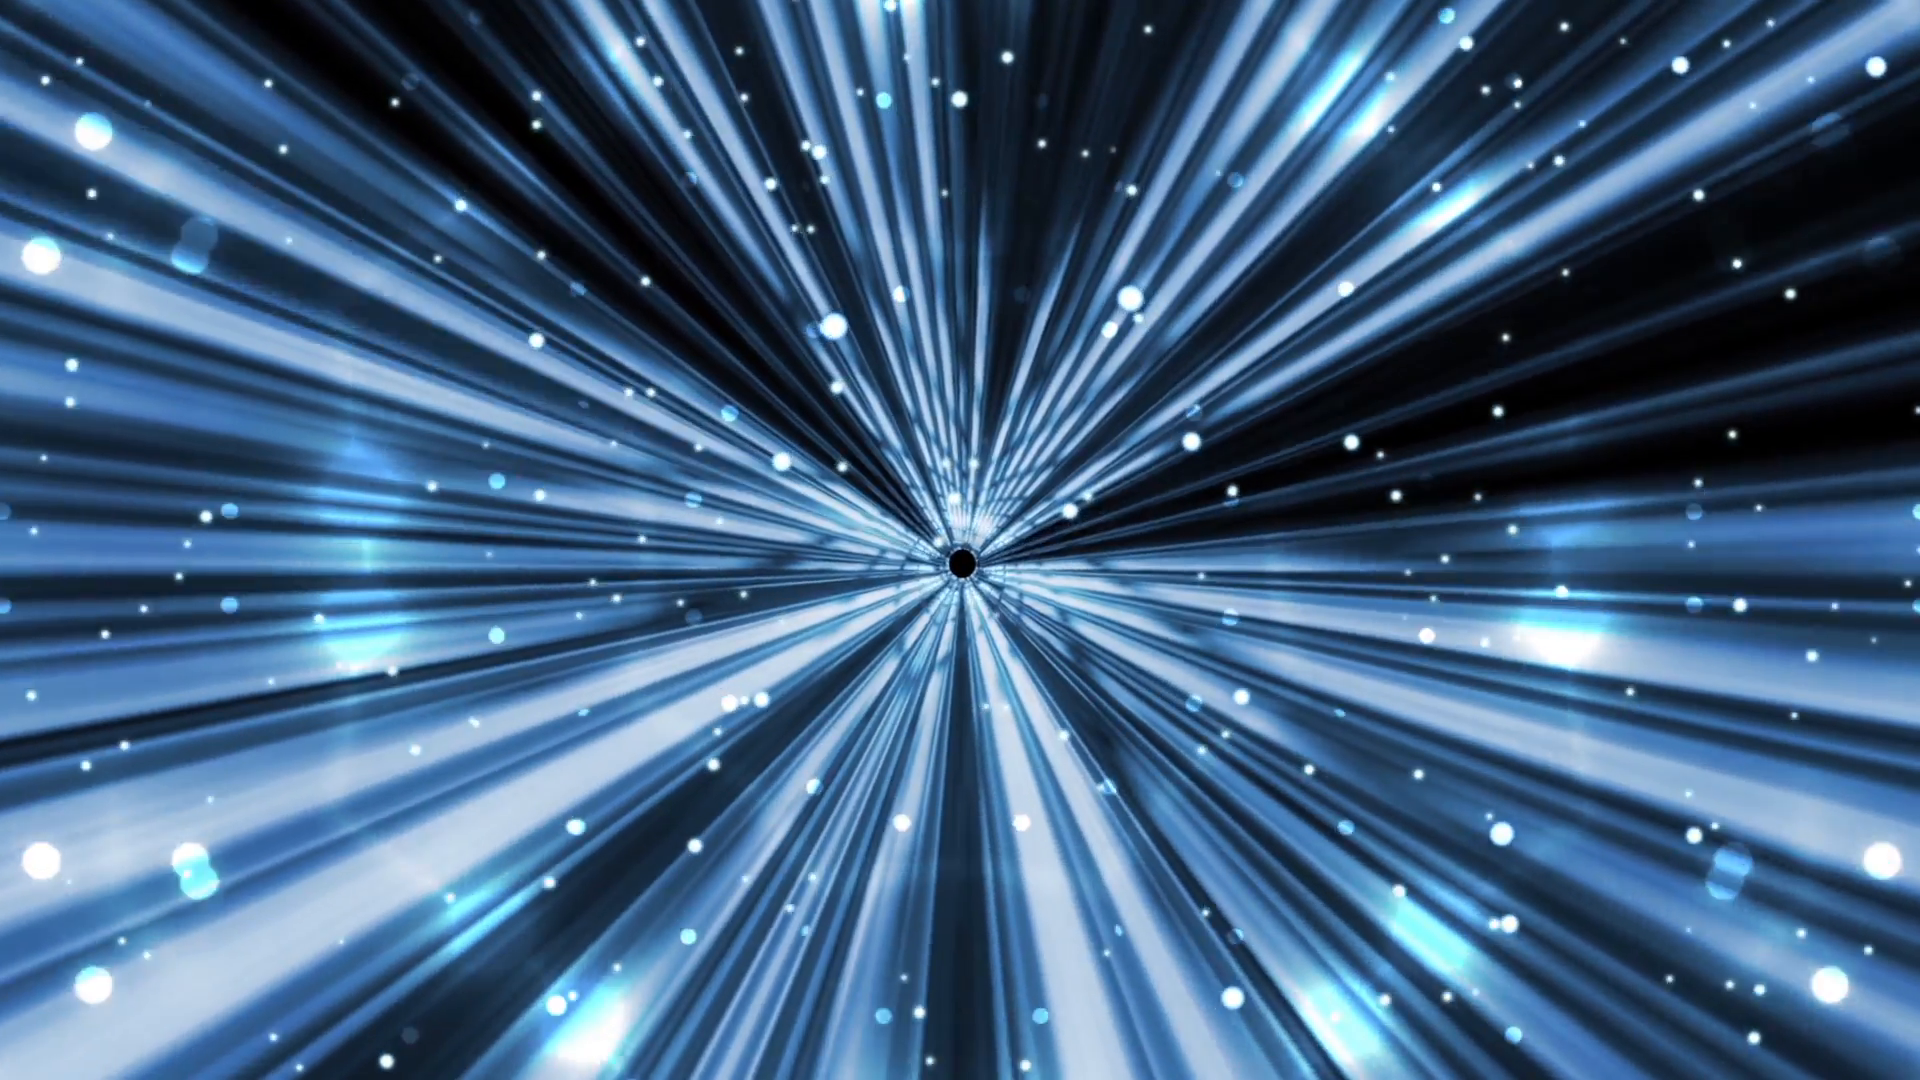 Spinning bright light rays and particles Motion Background - VideoBlocks